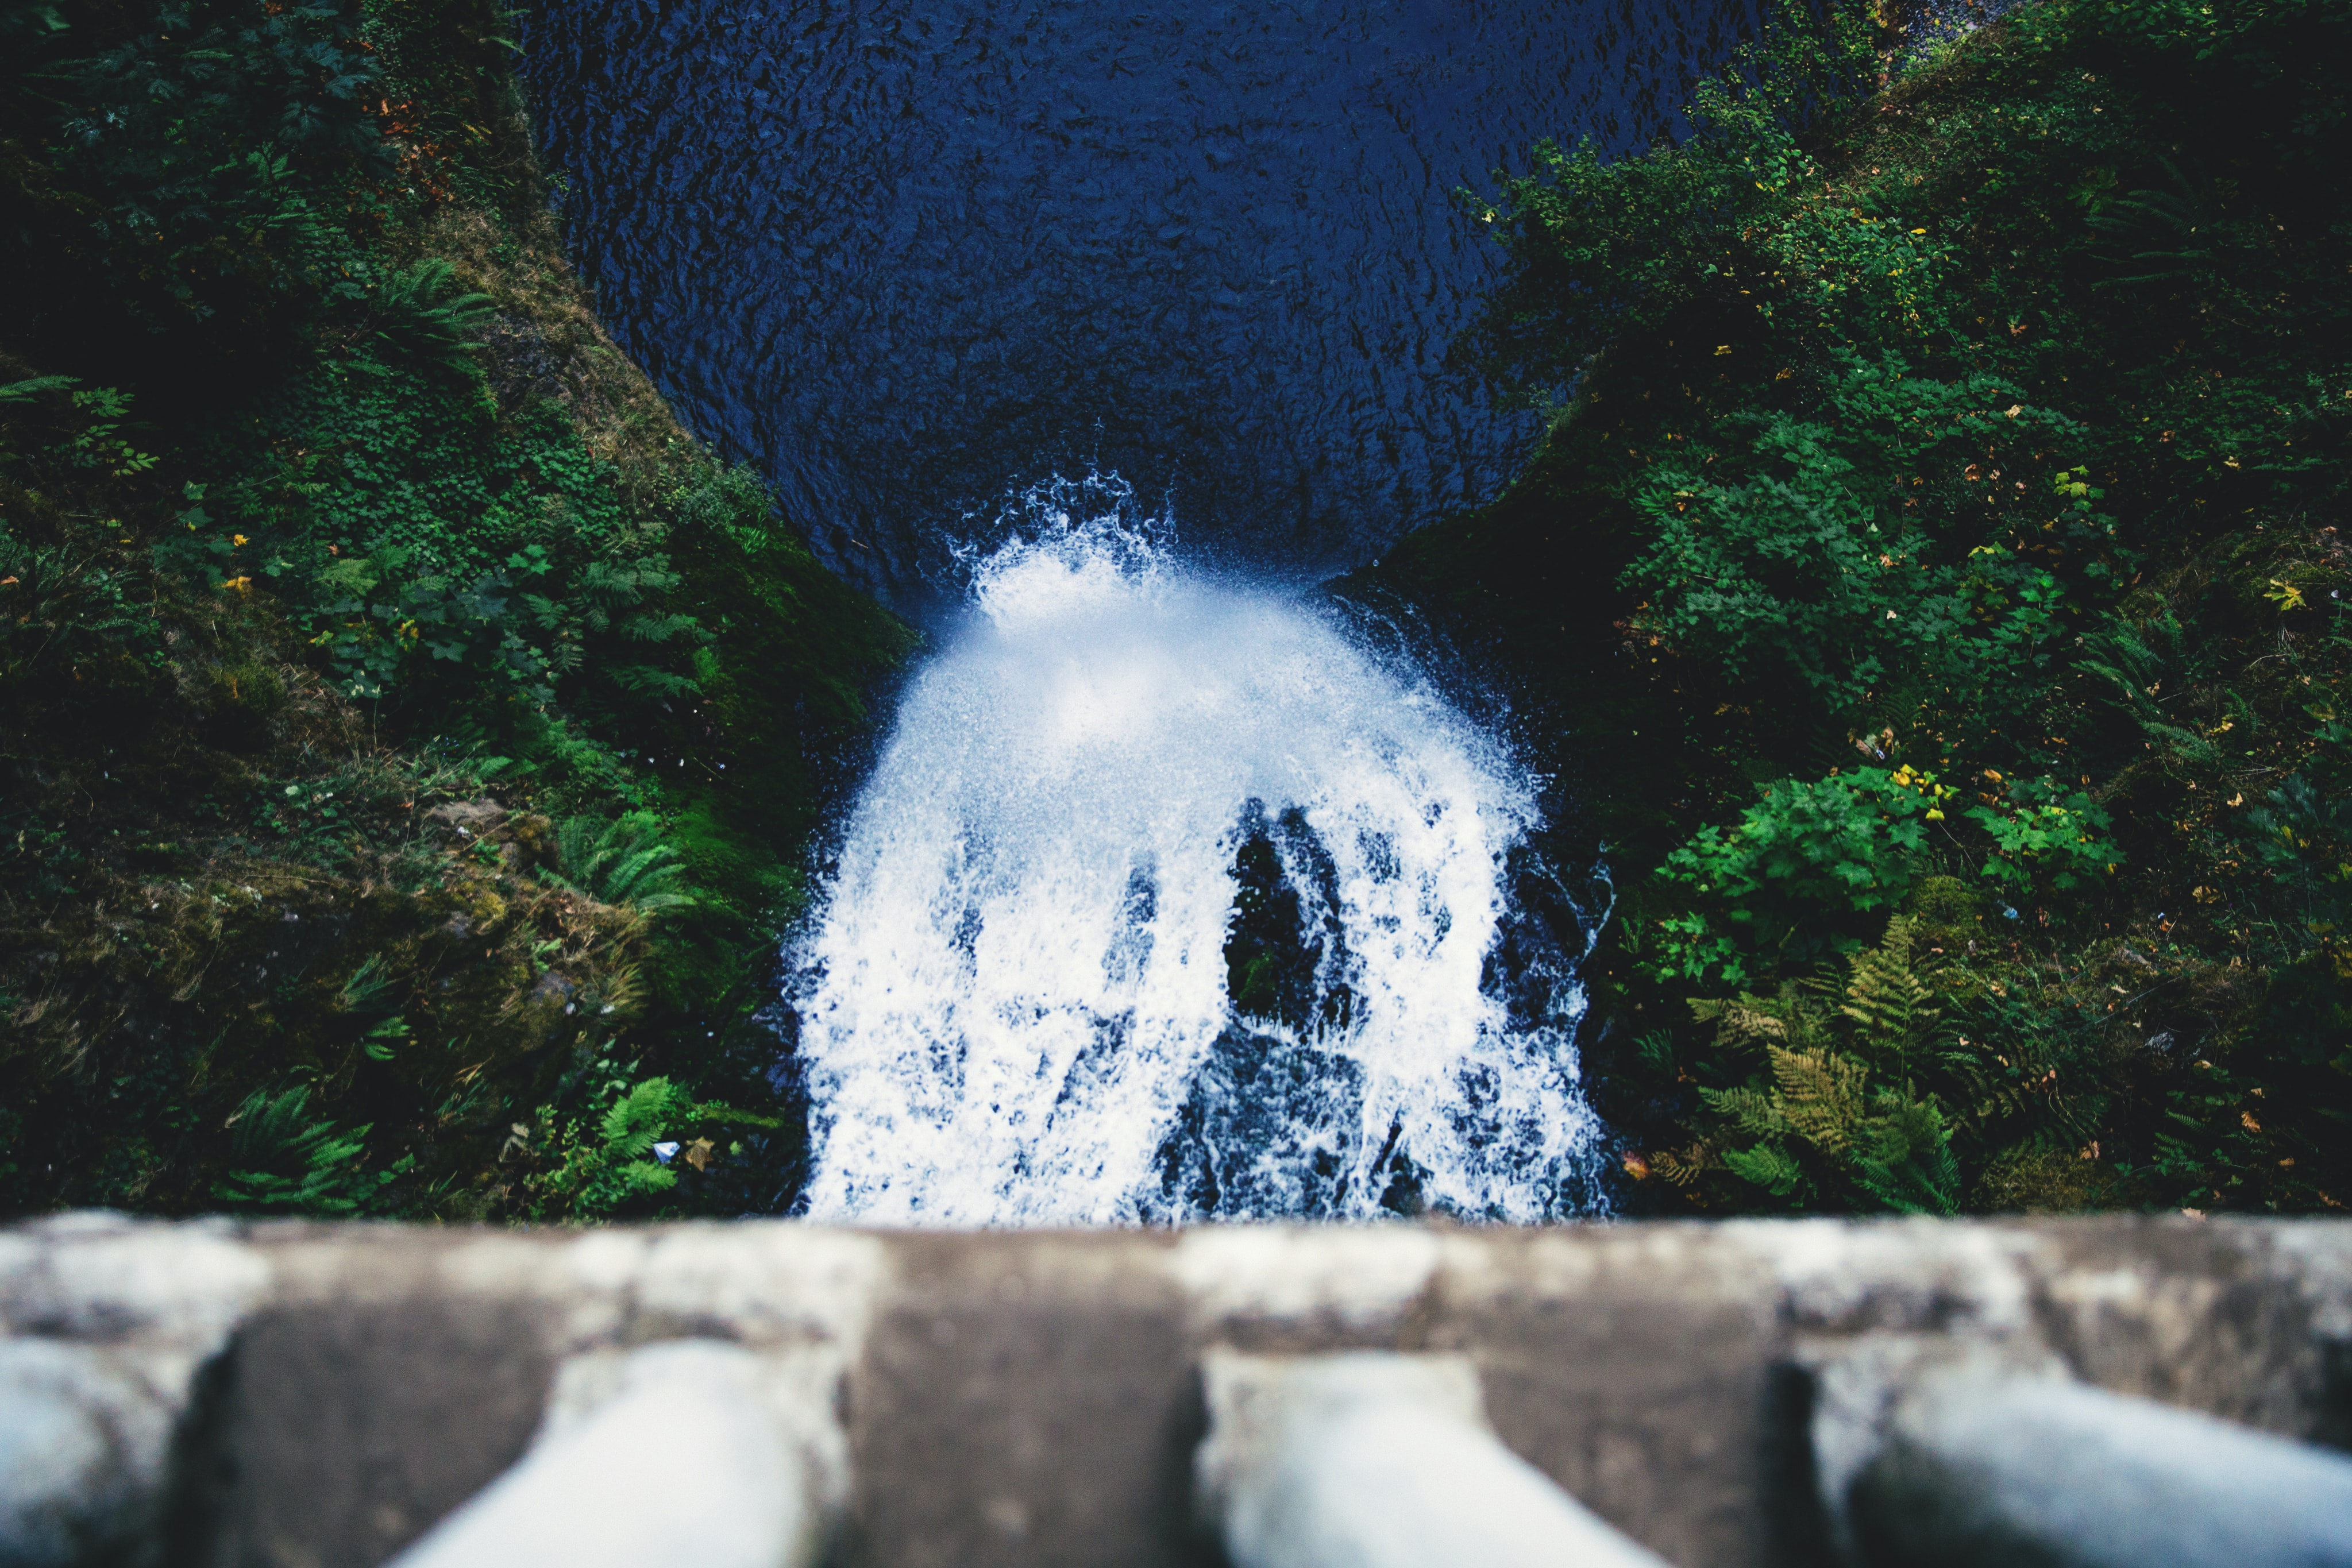 Aerial view of gushing waterfall surrounded by trees underneath bridge at Multnomah Falls